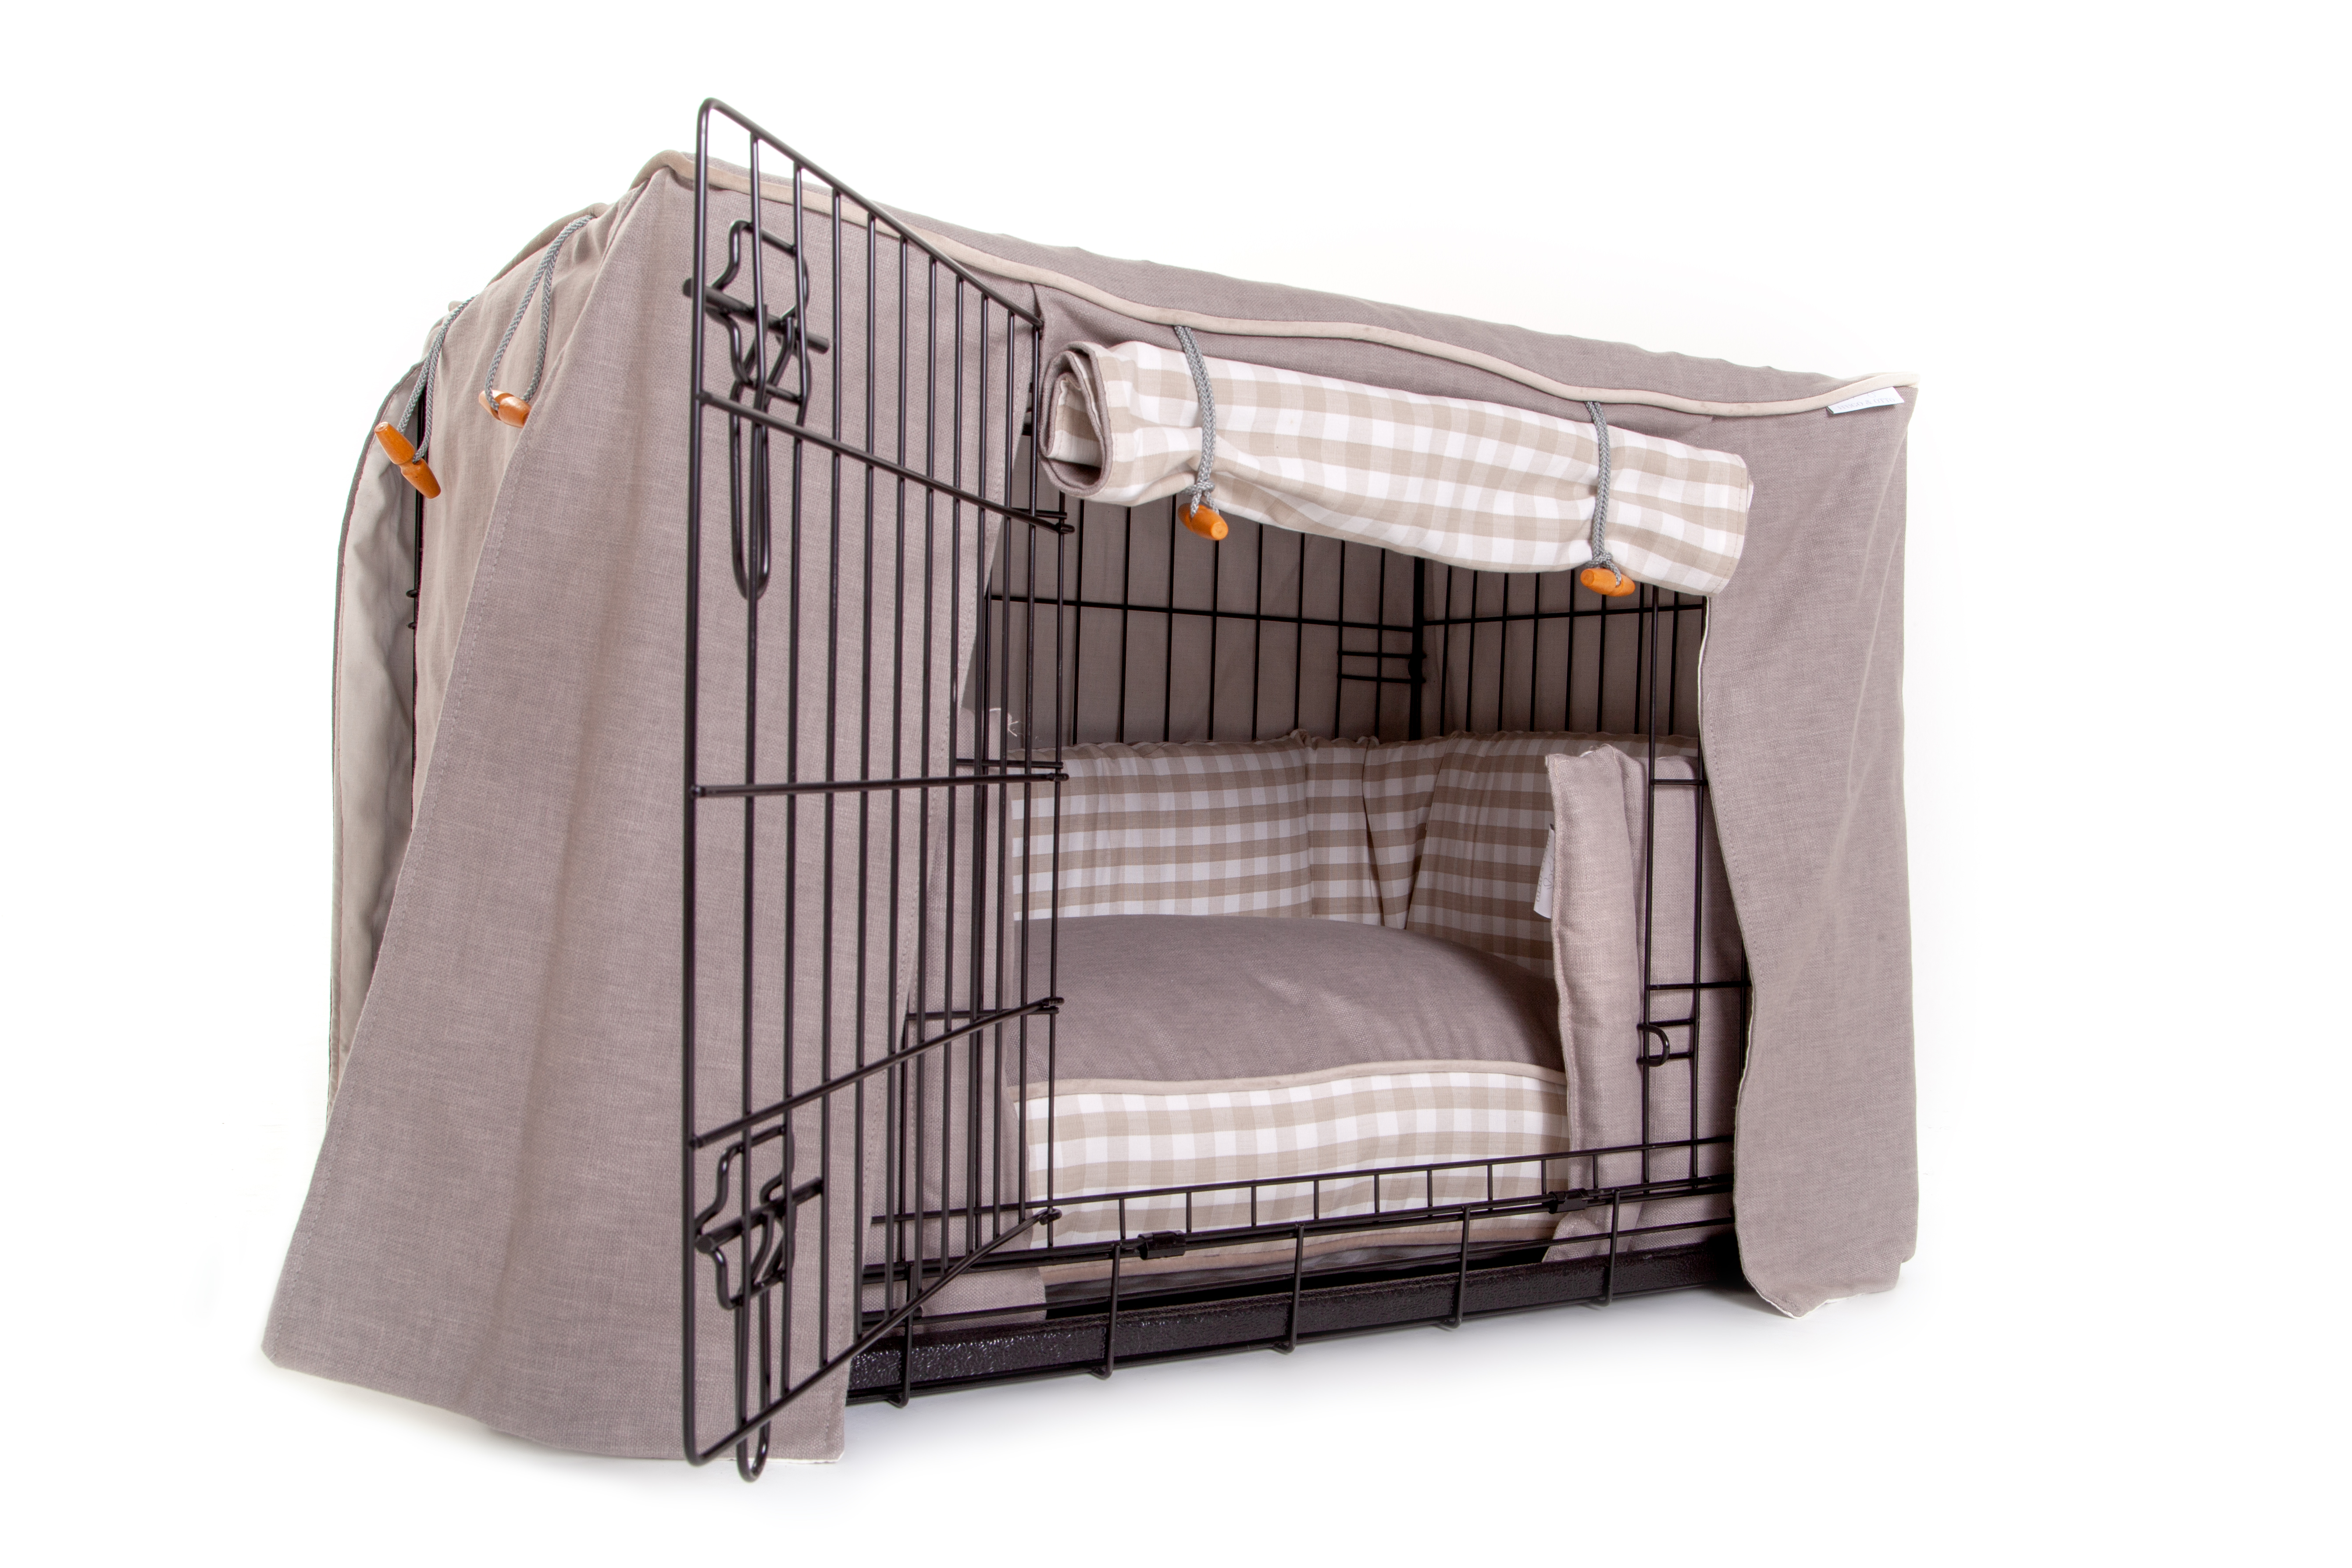 Little Tew Cosy Dog Crate Set, Dog Crate Set, Little Tew, Little Tew Dog Crate, Dog Crate, Dog Crate Bumper Set, Dog Crate Cushion, Dog Crate Sets, Dog Crate Cover,